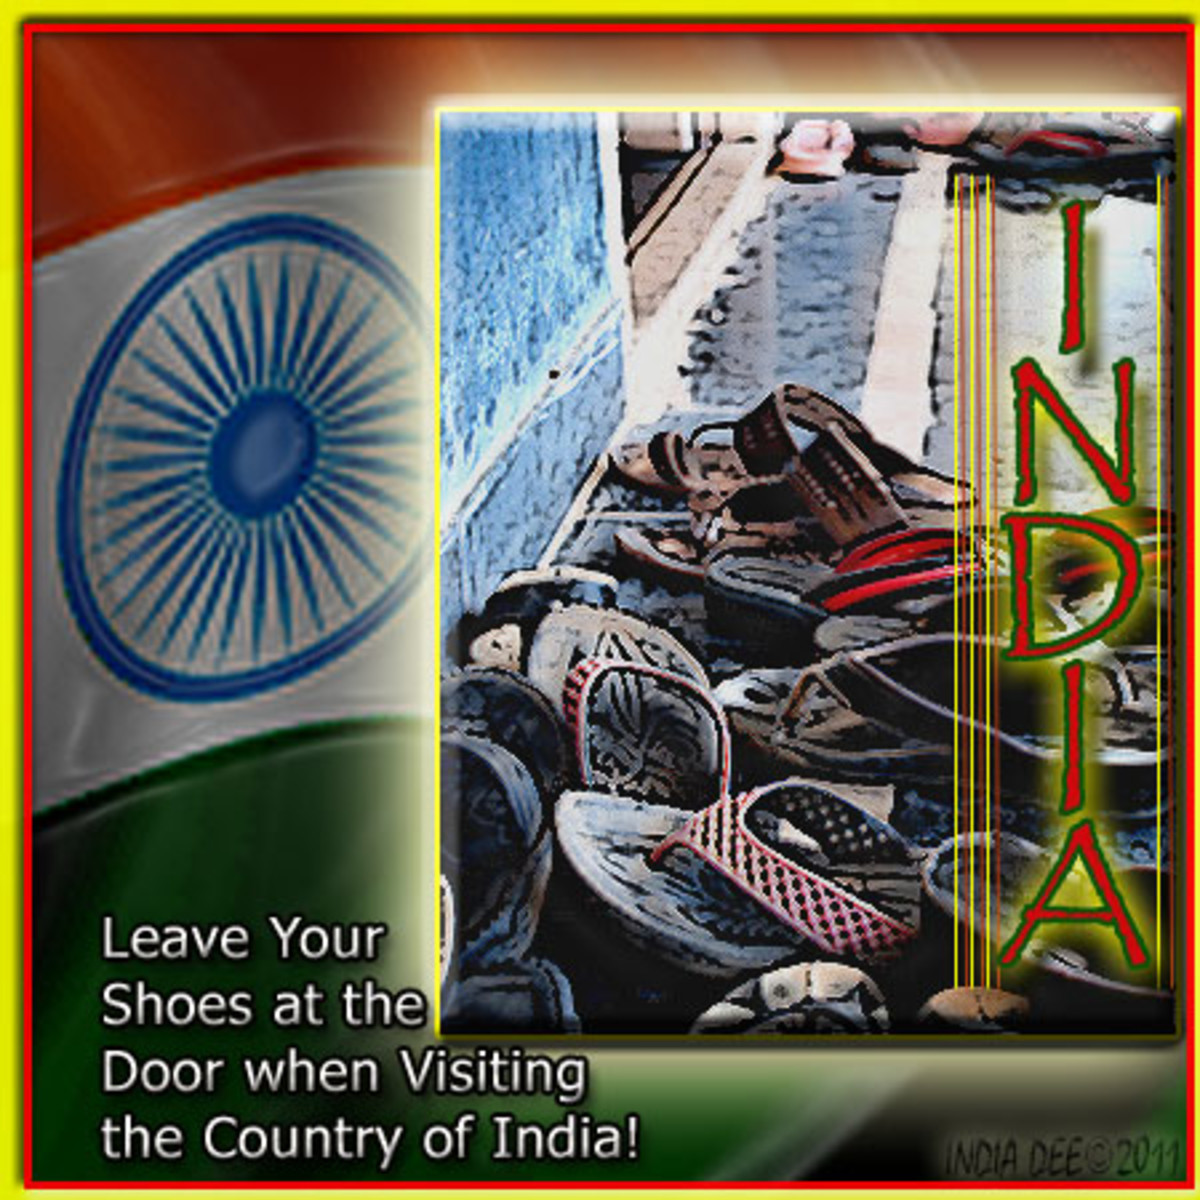 Flag of India - Respect the home by removing shoes